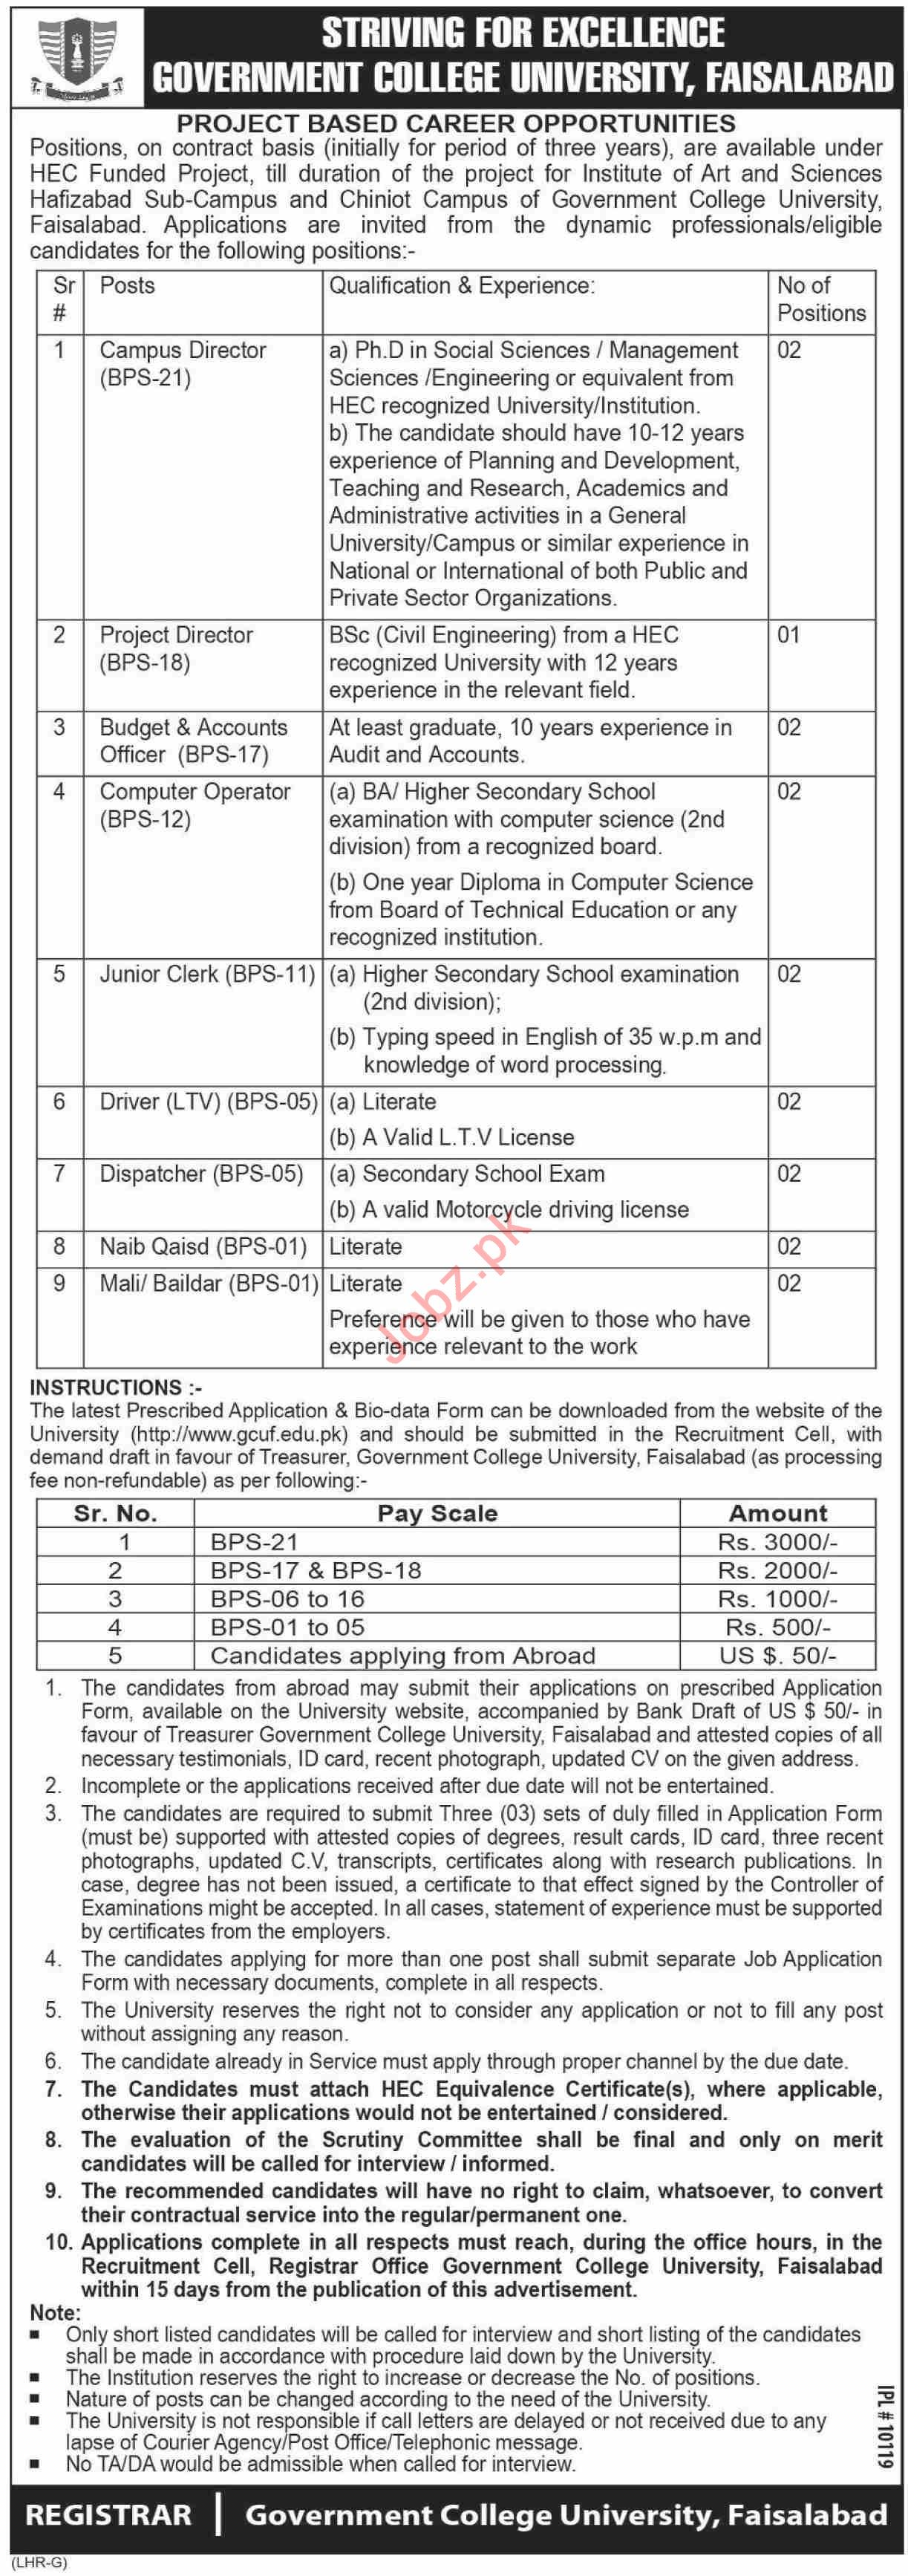 Government College University Faisalabad GCUF Jobs 2019